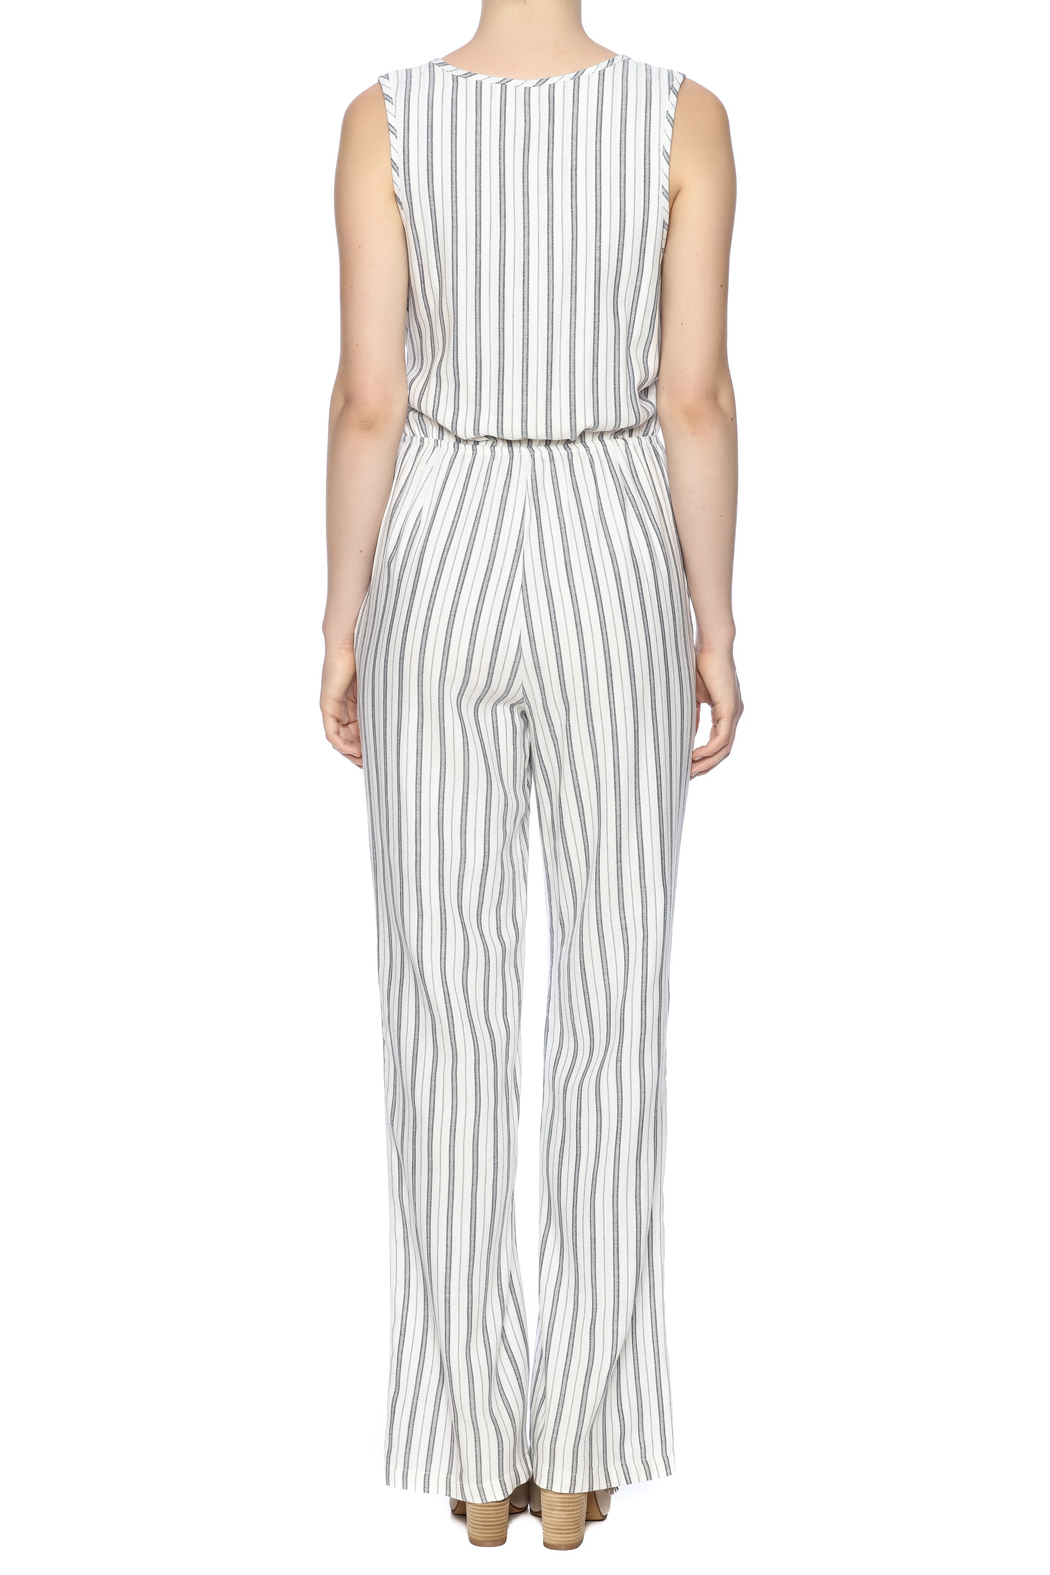 Cupcakes & Cashmere Stripe Jumpsuit - Back Cropped Image